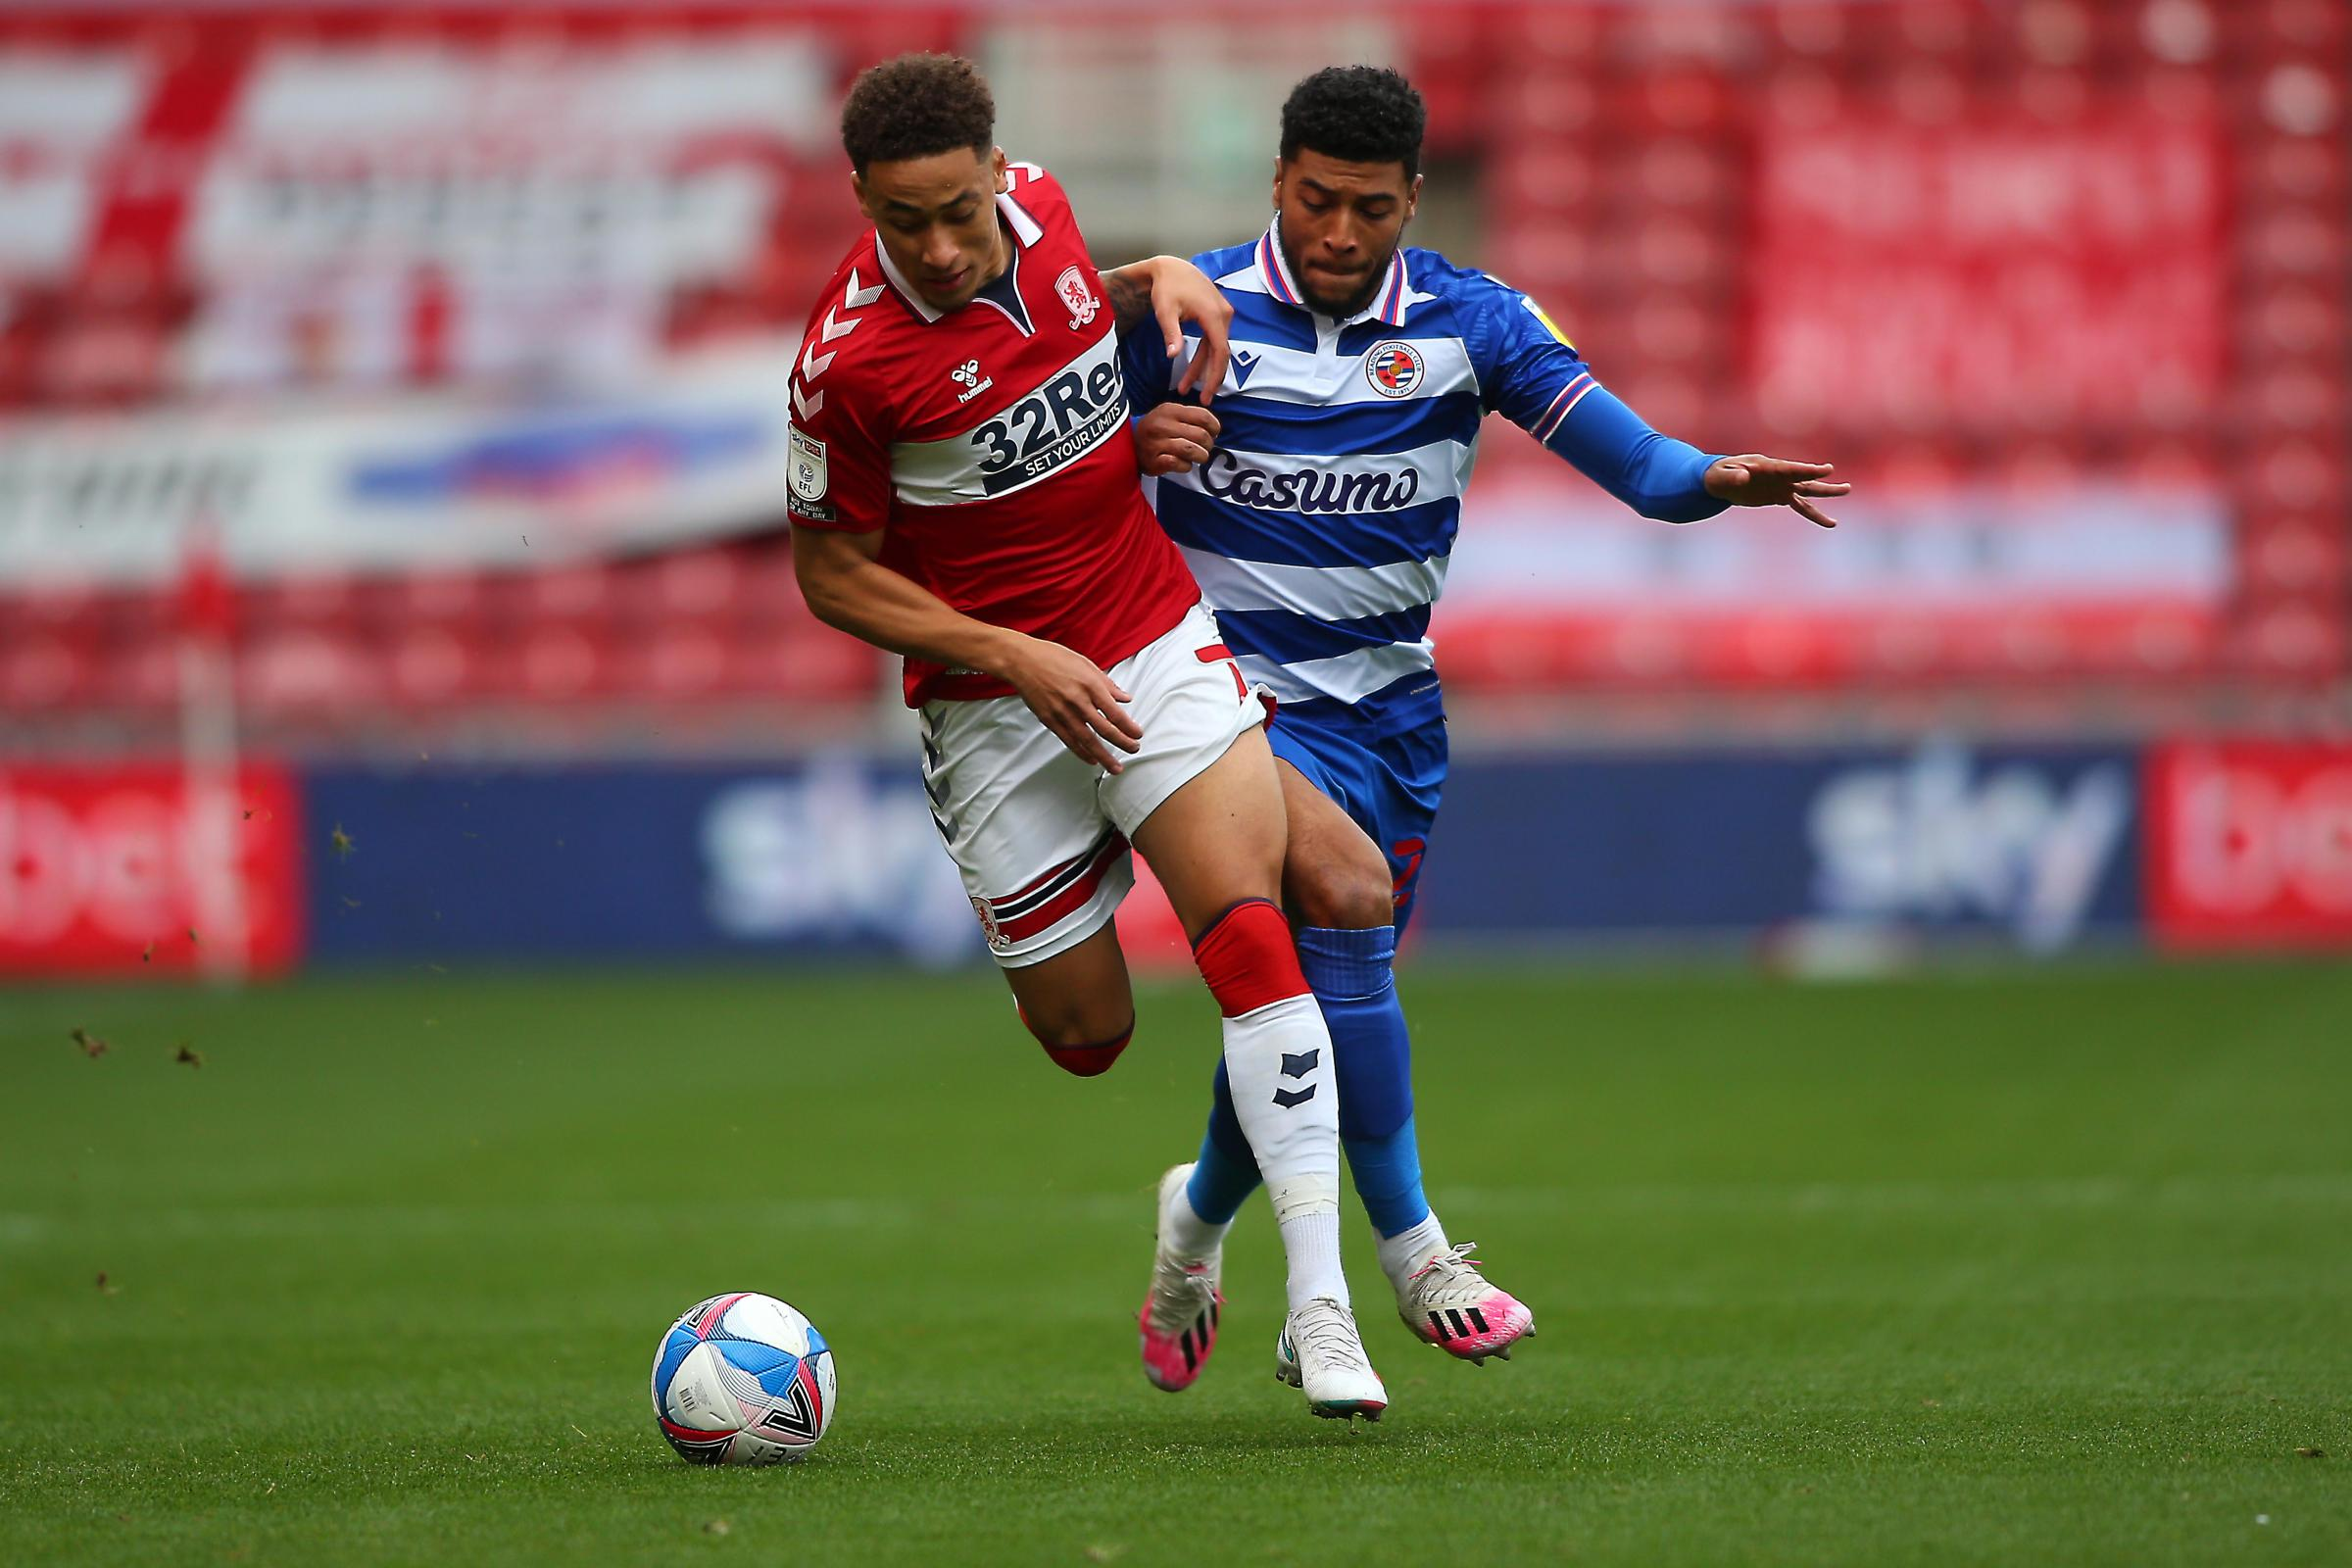 Boro hopeful of duo being fit for league opener against Fulham